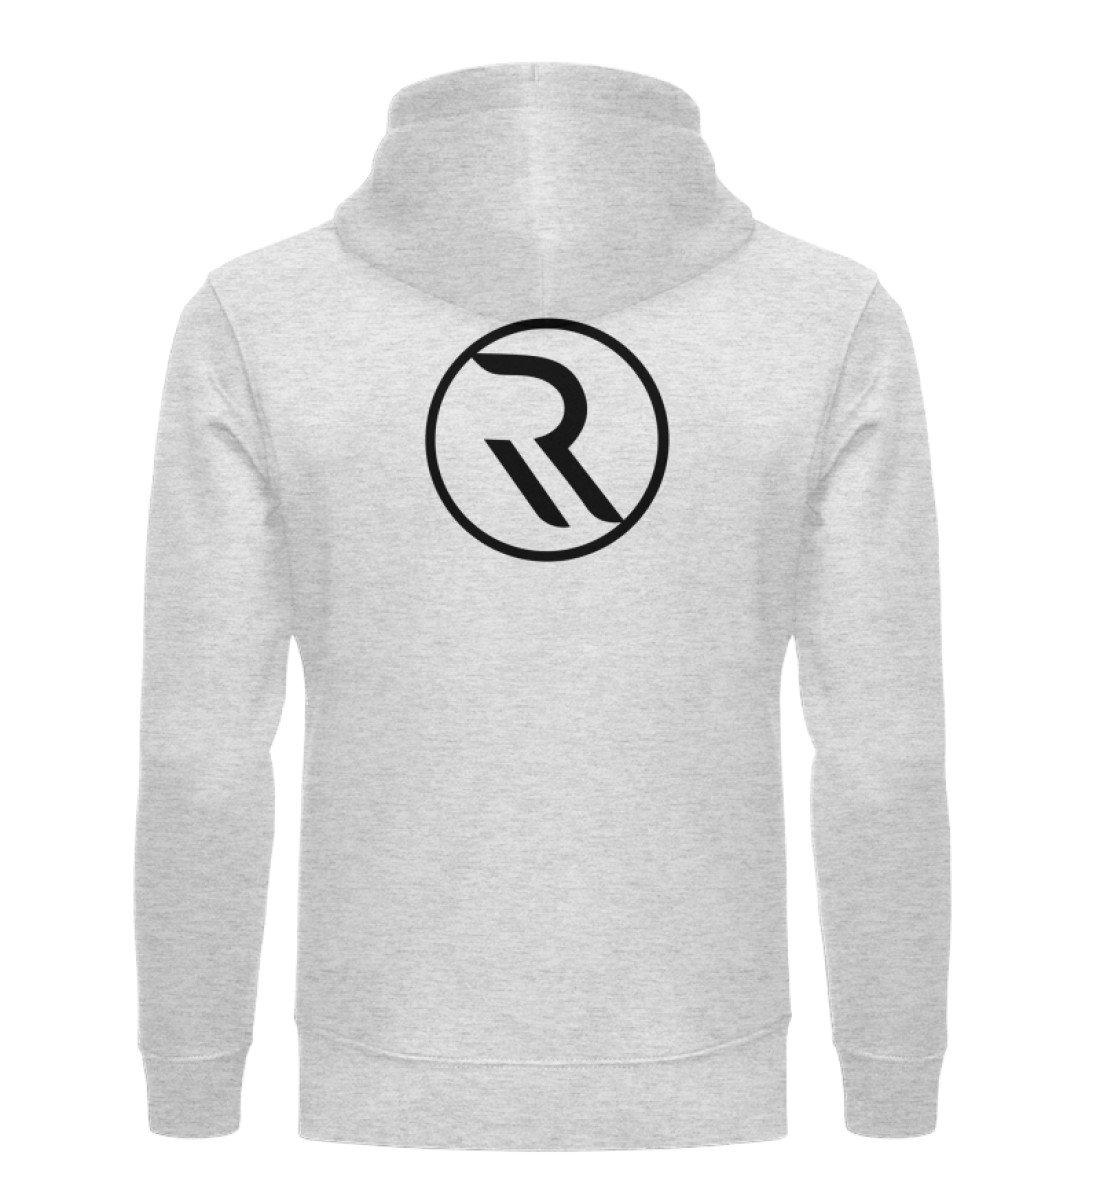 ROPEMAKER RAVE-ON!®️ GREY UNISEX HOODIE - Unisex Organic Hoodie Cruiser Hoodie ST/ST Heather Grey / S - Rave On!® der Club & Techno Szene Shop für Coole Junge Mode Streetwear Style & Fashion Outfits + Sexy Festival 420 Stuff